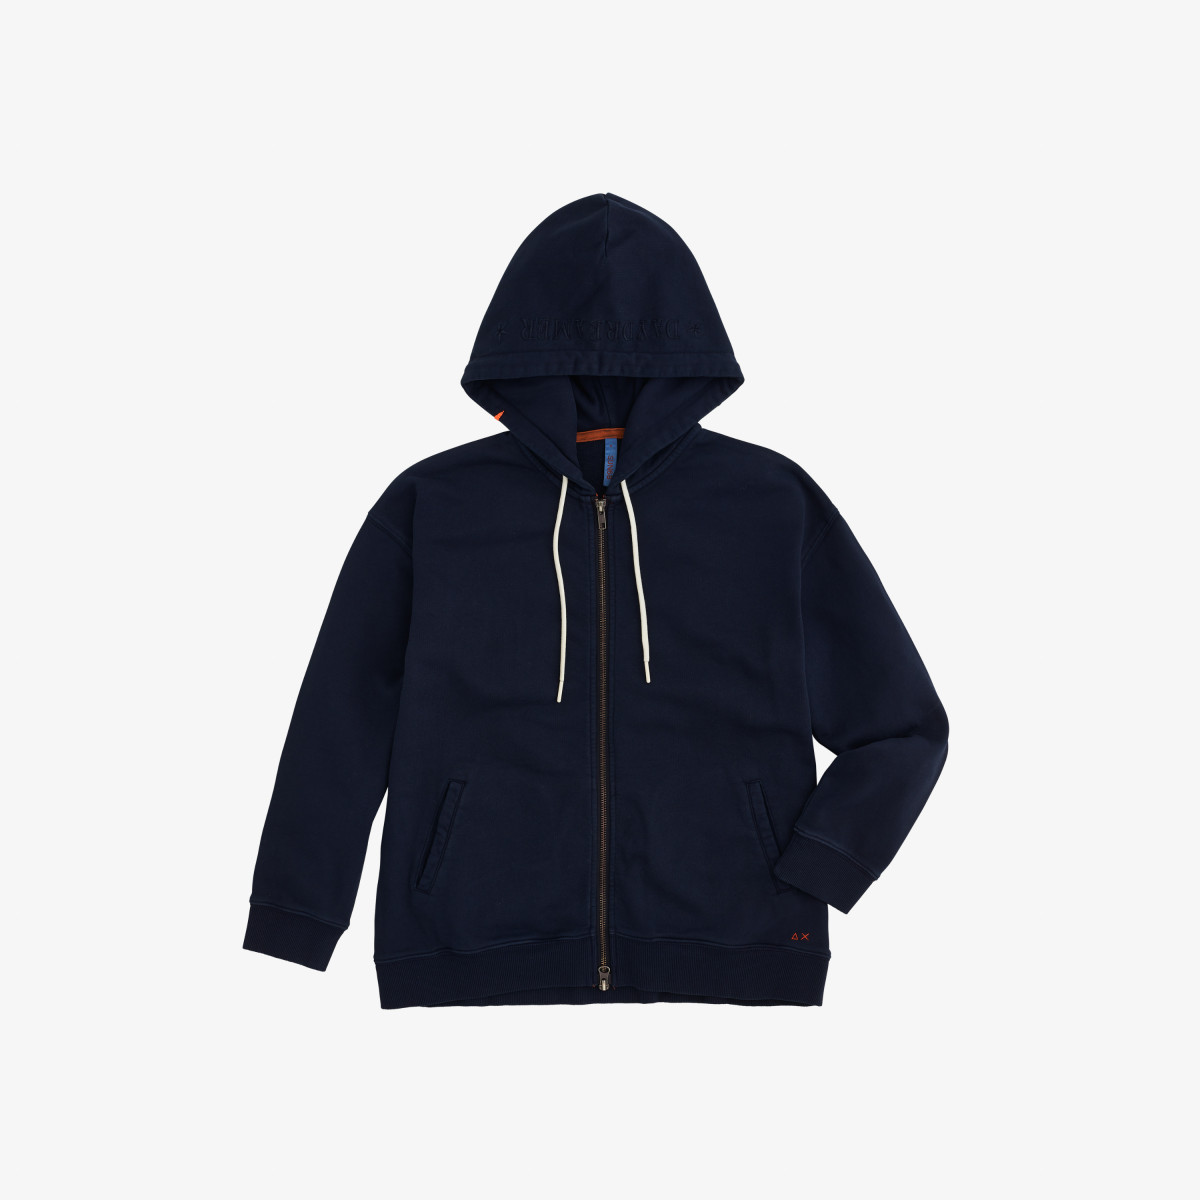 HOOD COLD DYE COTTON FL NAVY BLUE